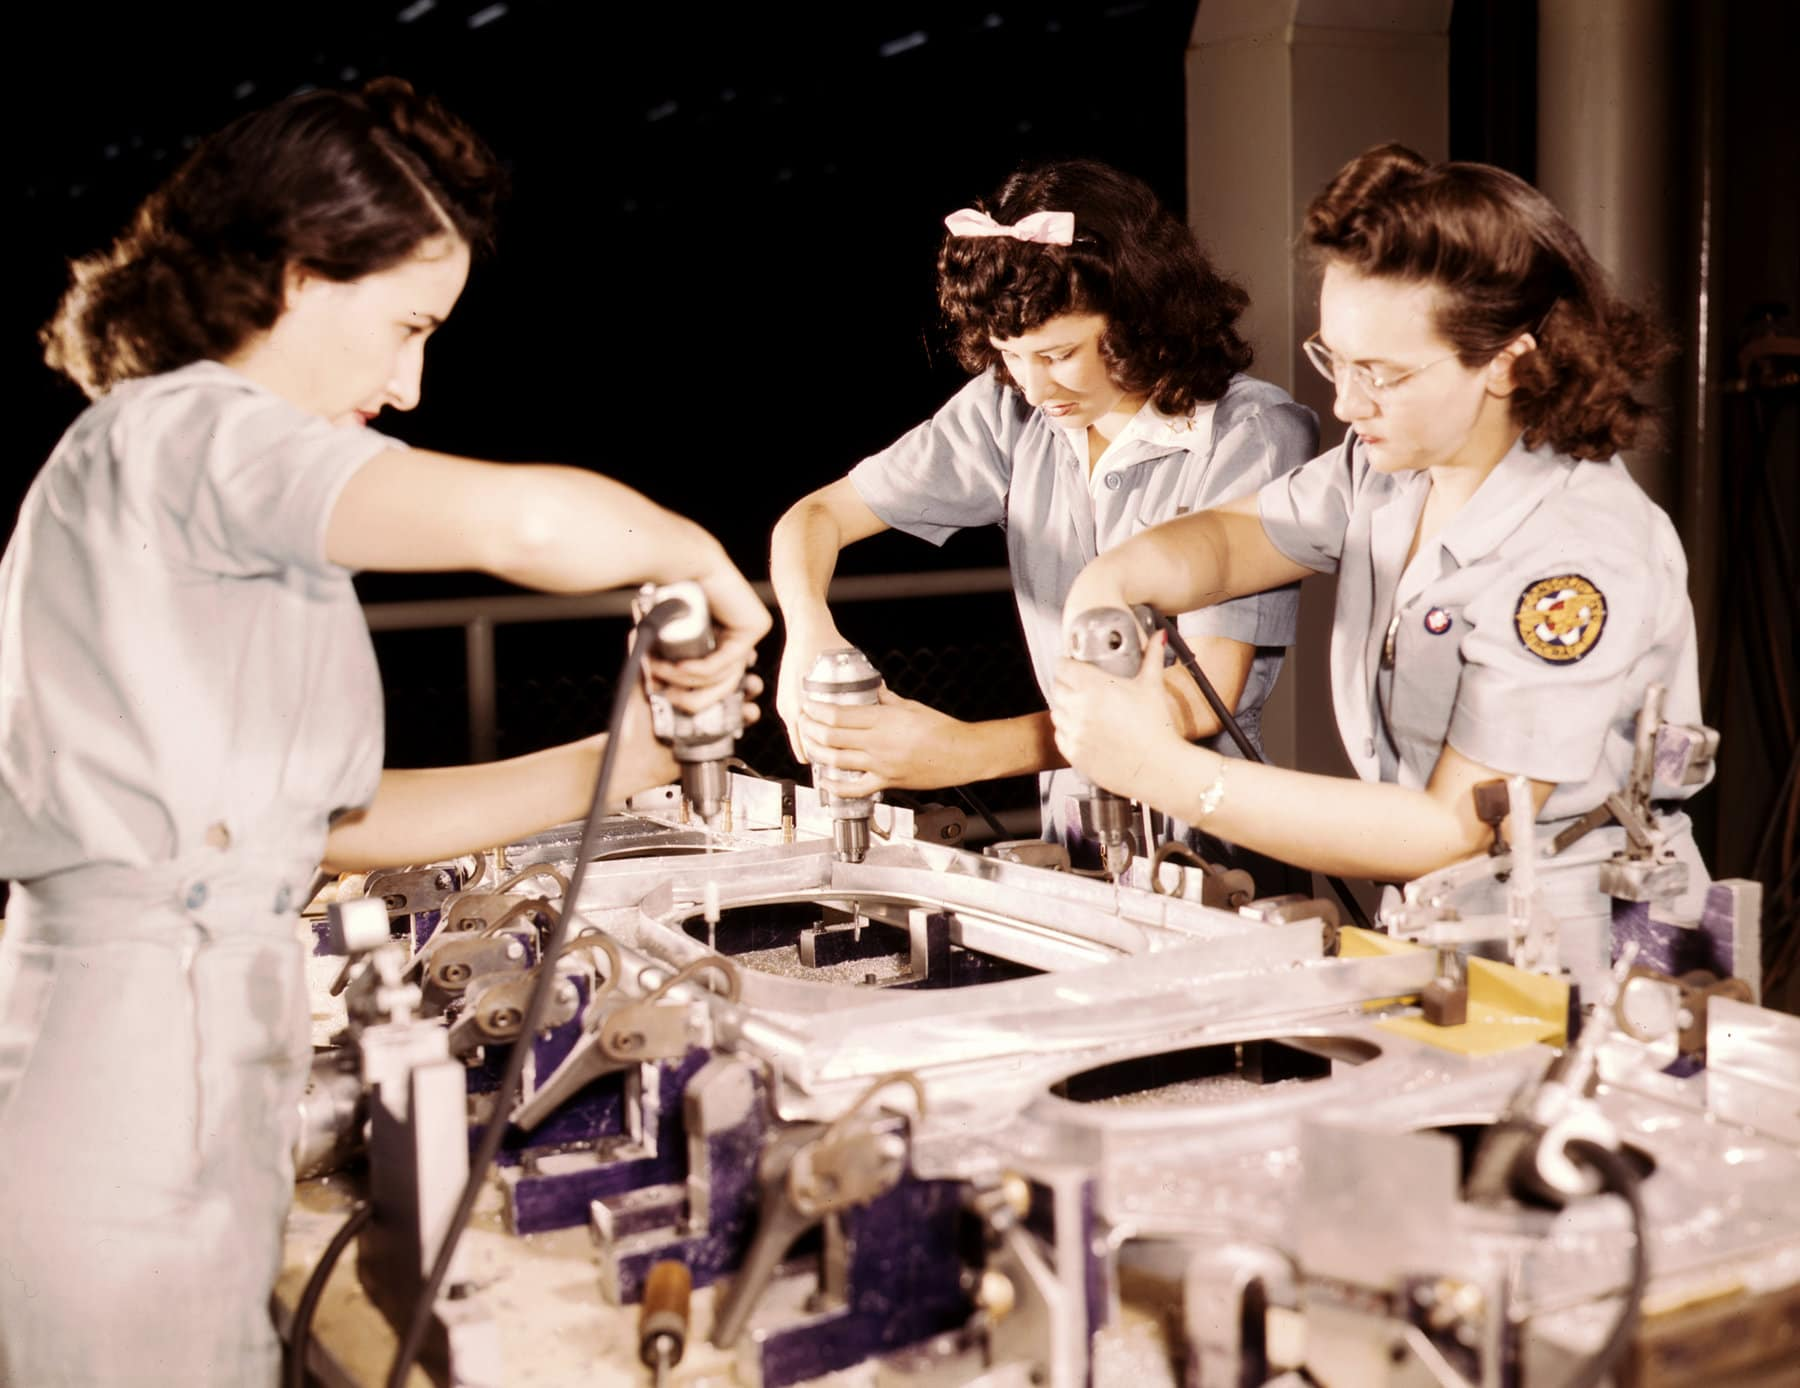 3 women drilling a wing bulkhead for a transport plane - Rosie the Riveters